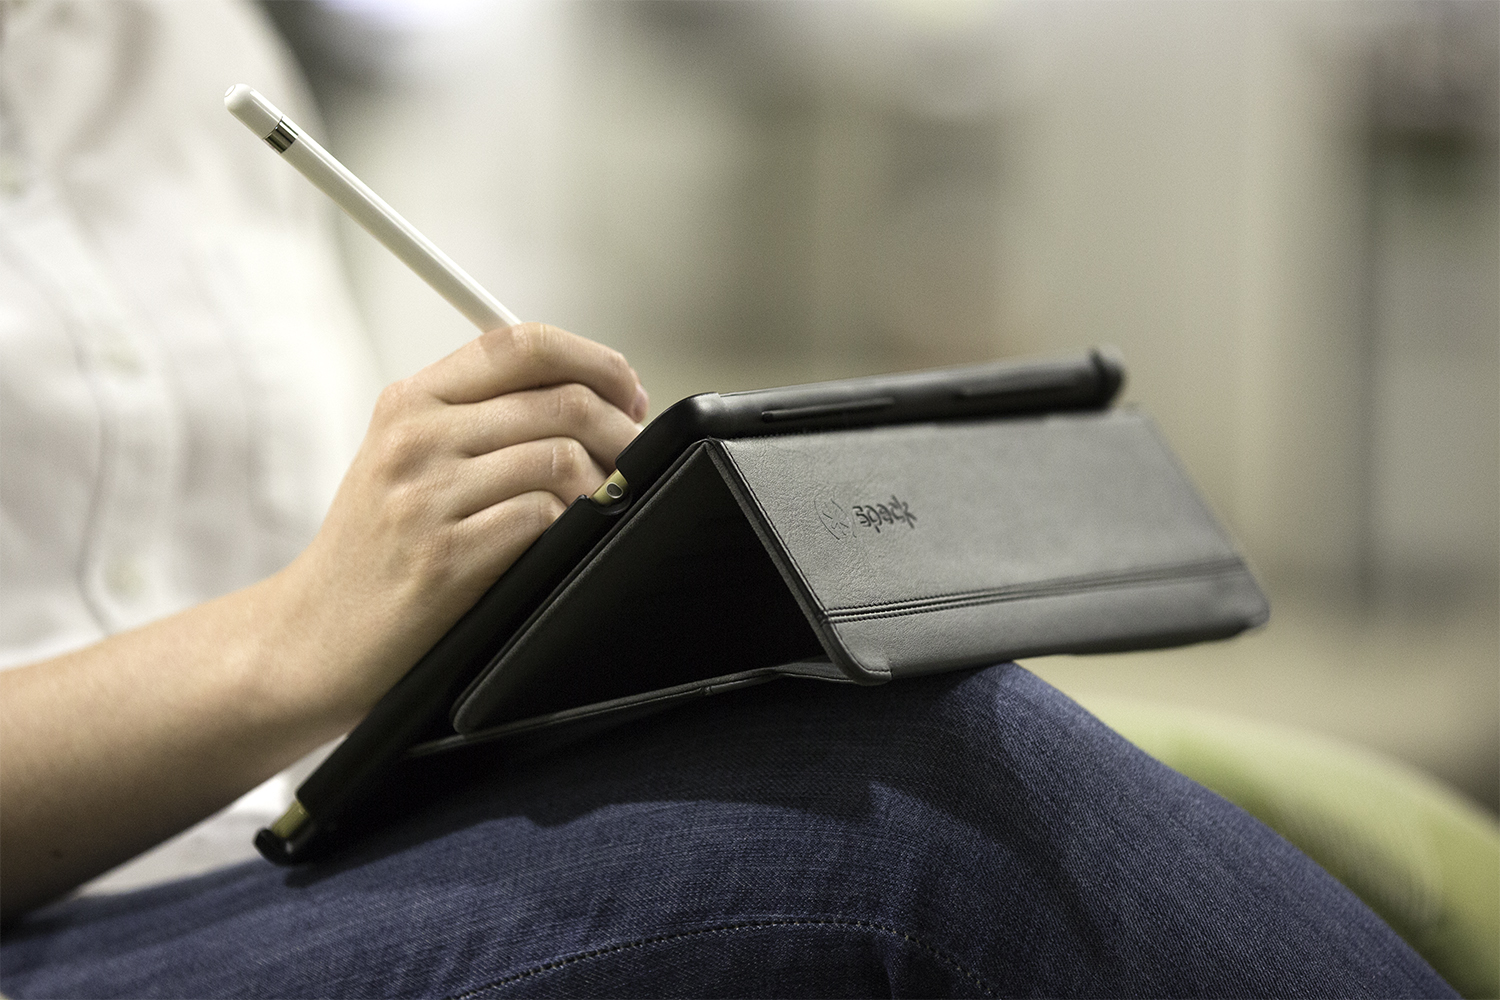 StyleFolio Pencil iPad Pro case with Pencil